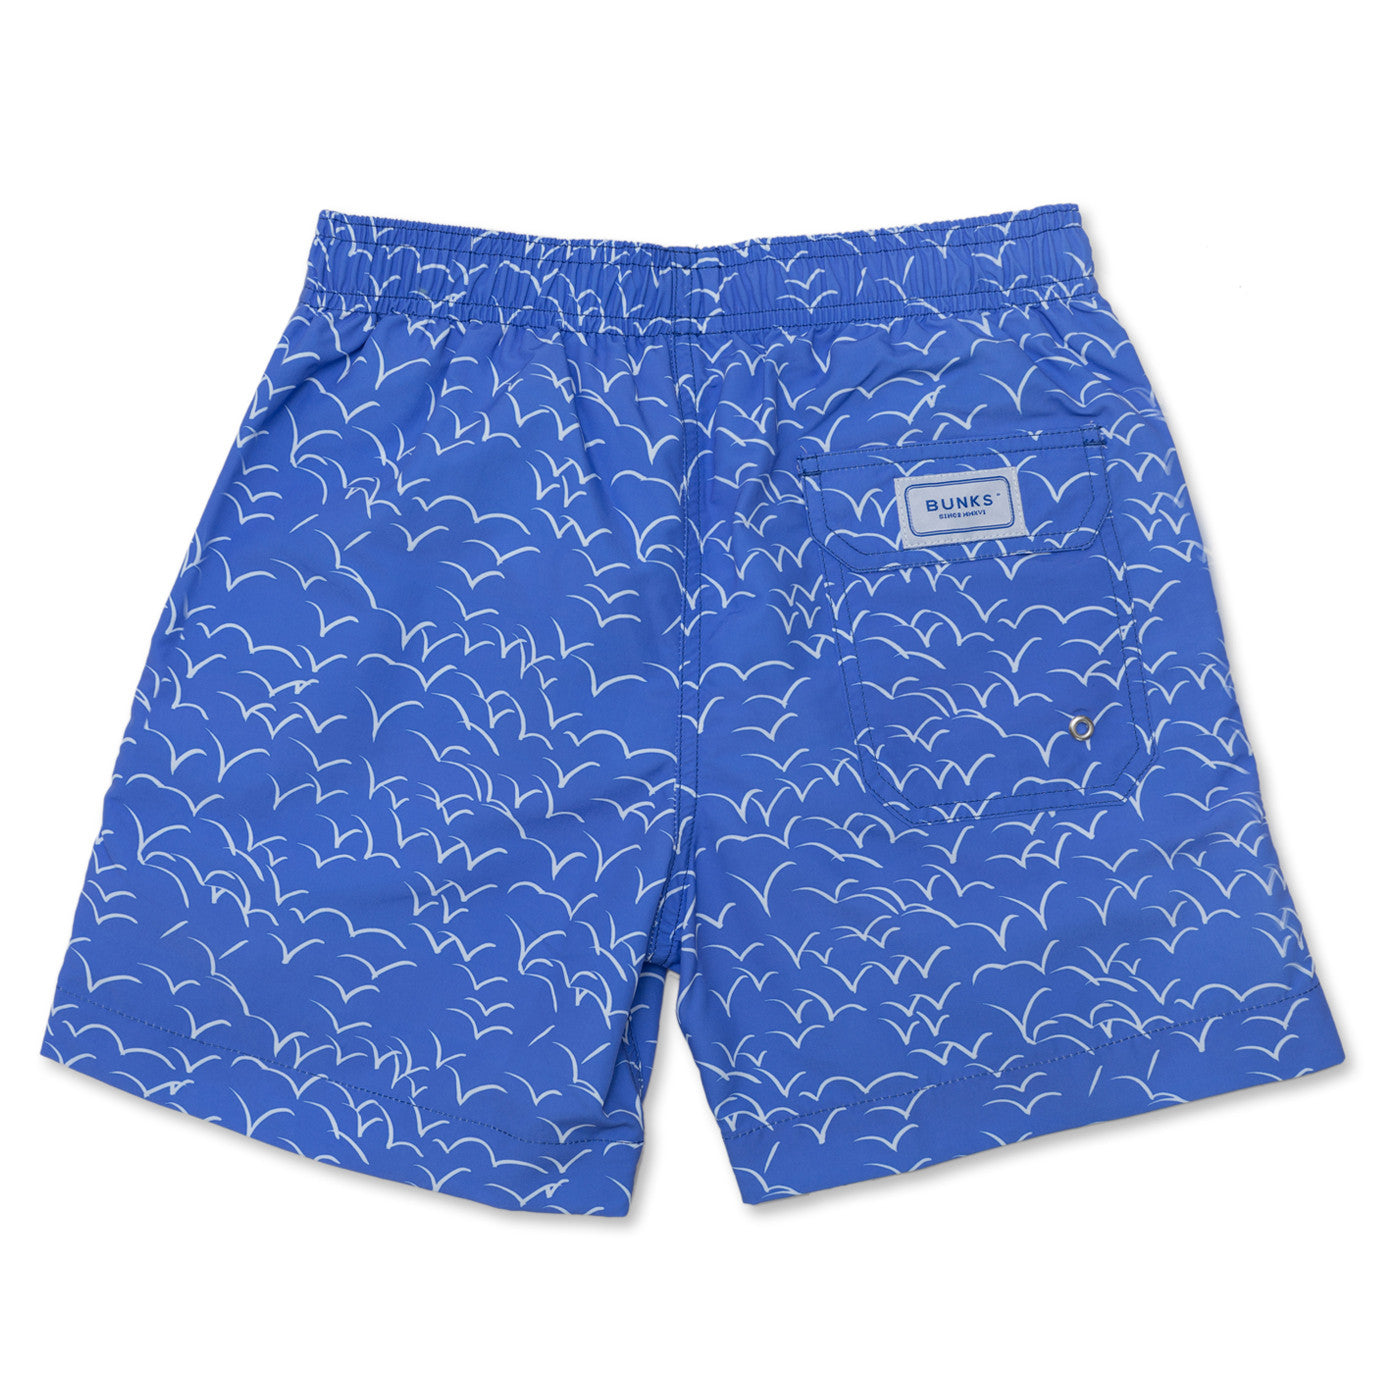 Unda Seagulls Swim Shorts